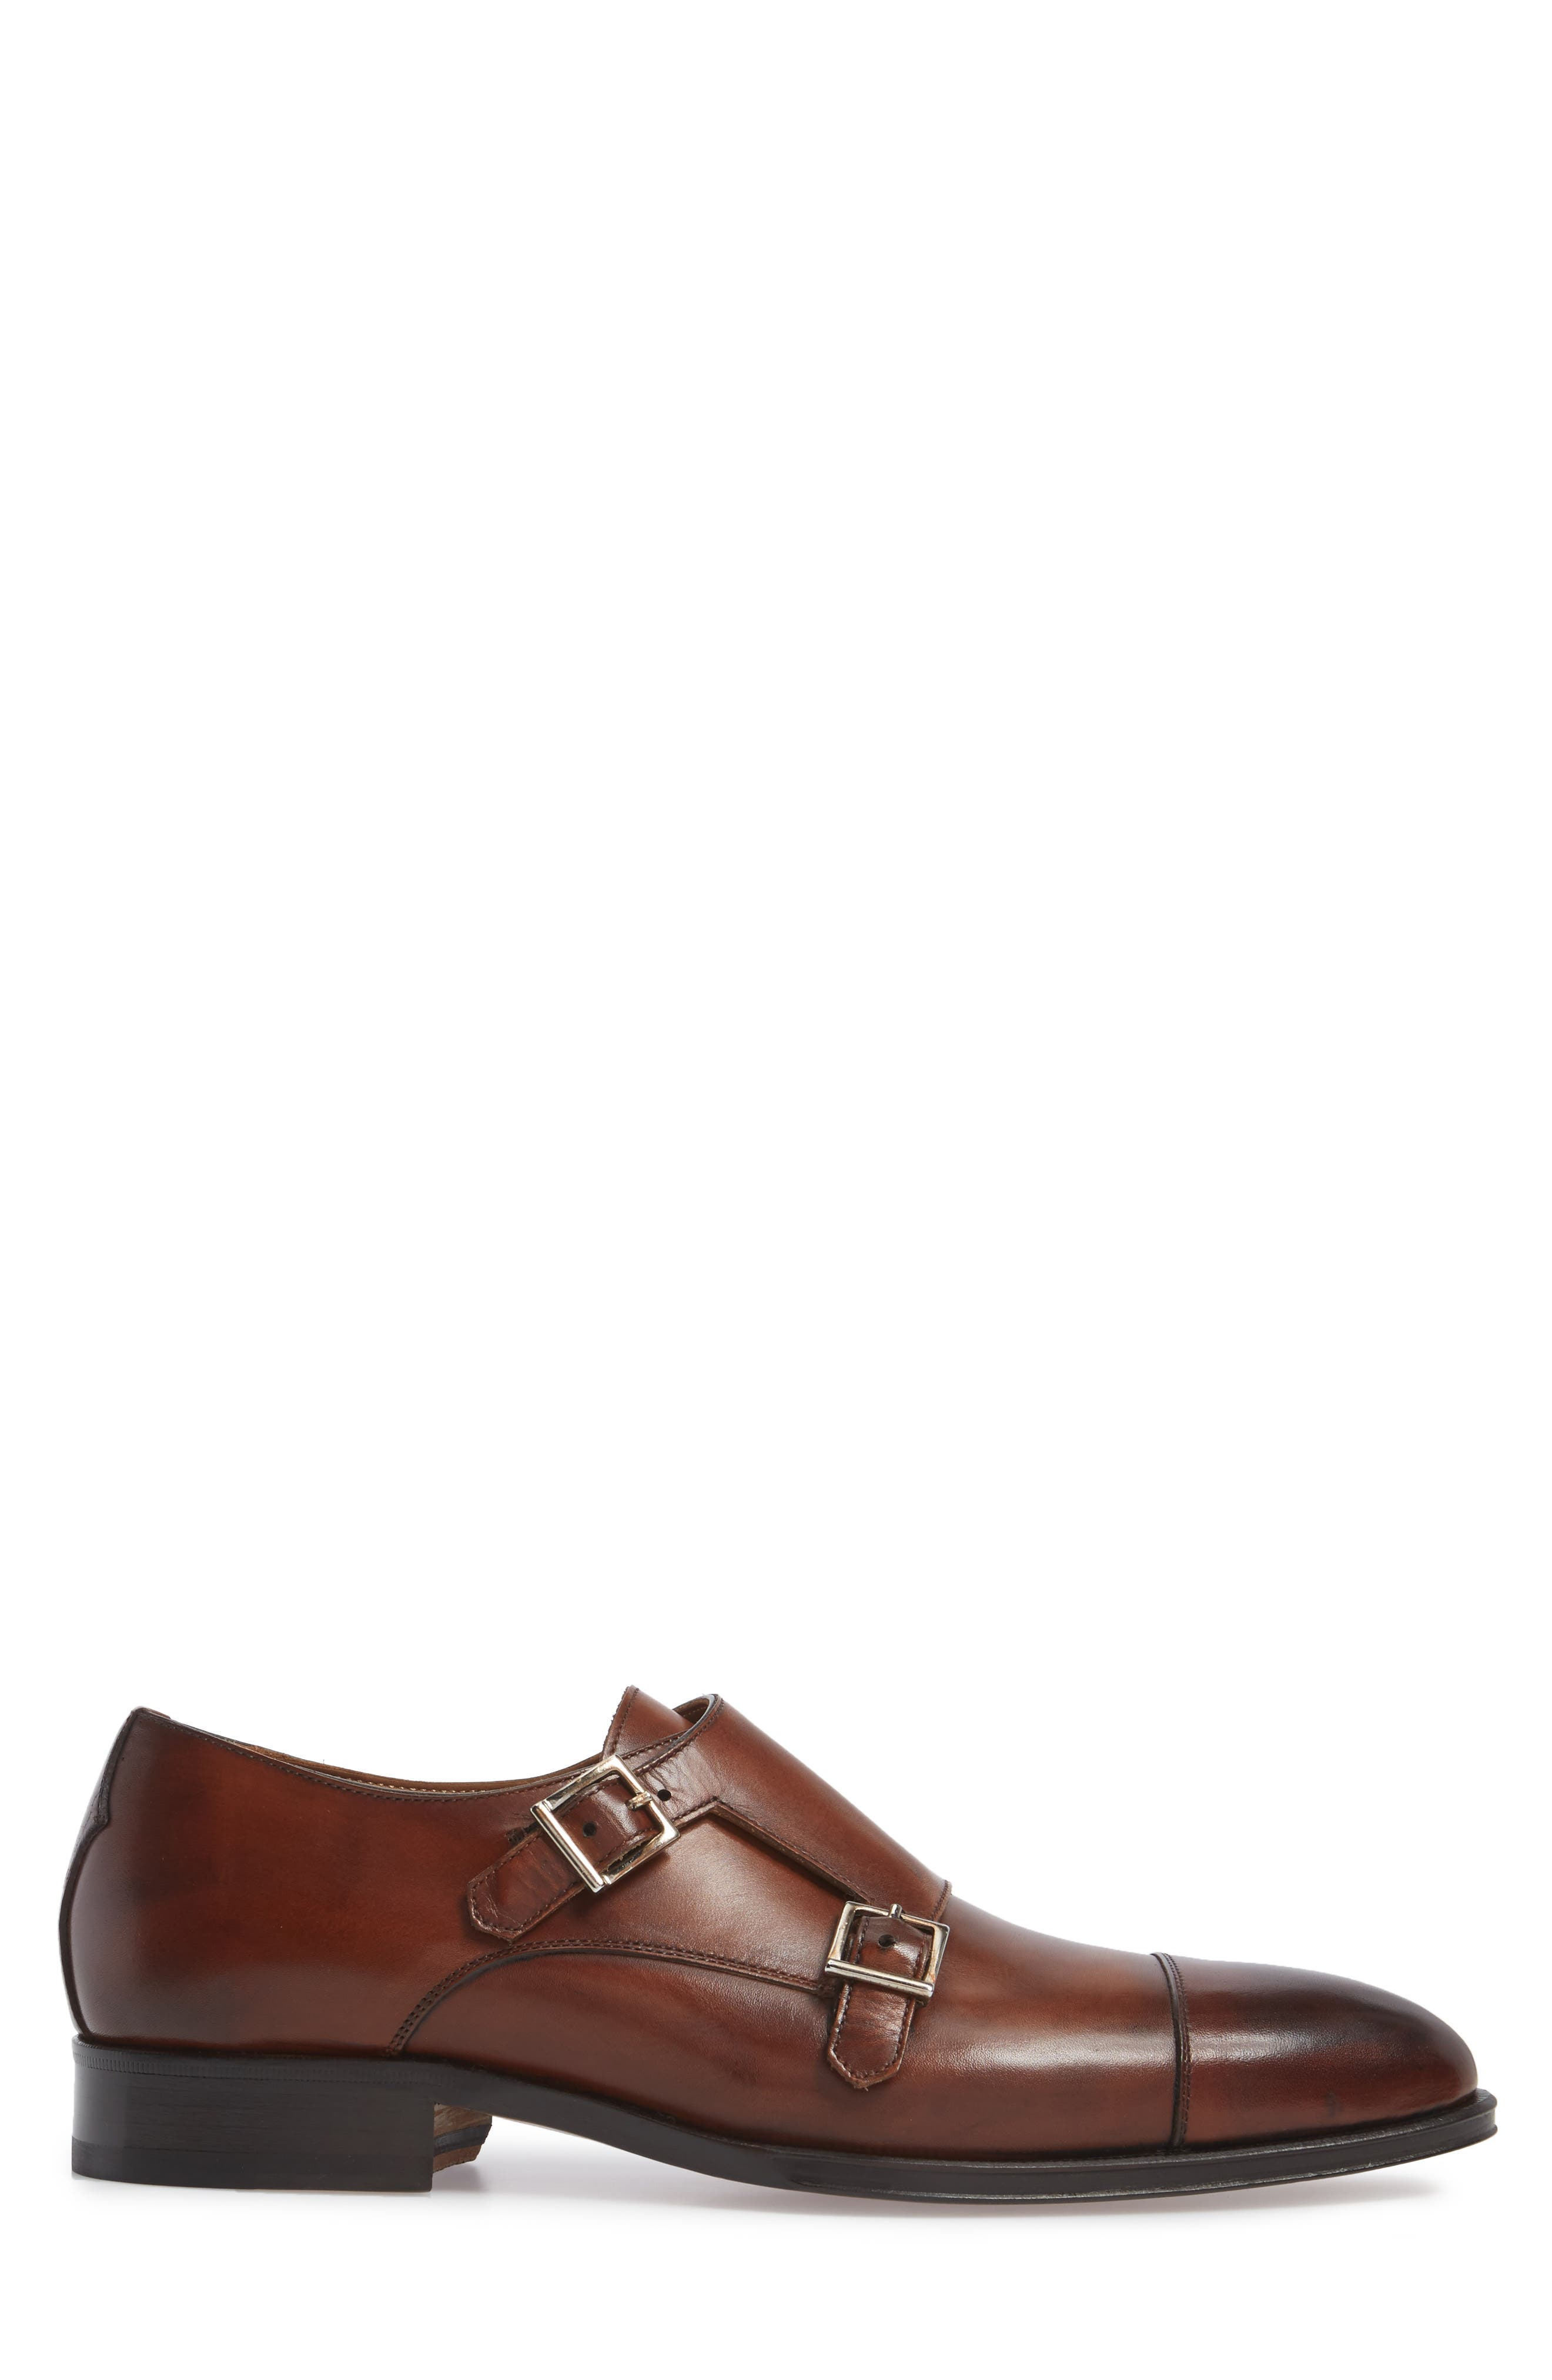 Gallo Bianco Double Monk Strap Shoe,                             Alternate thumbnail 3, color,                             Marble Brown